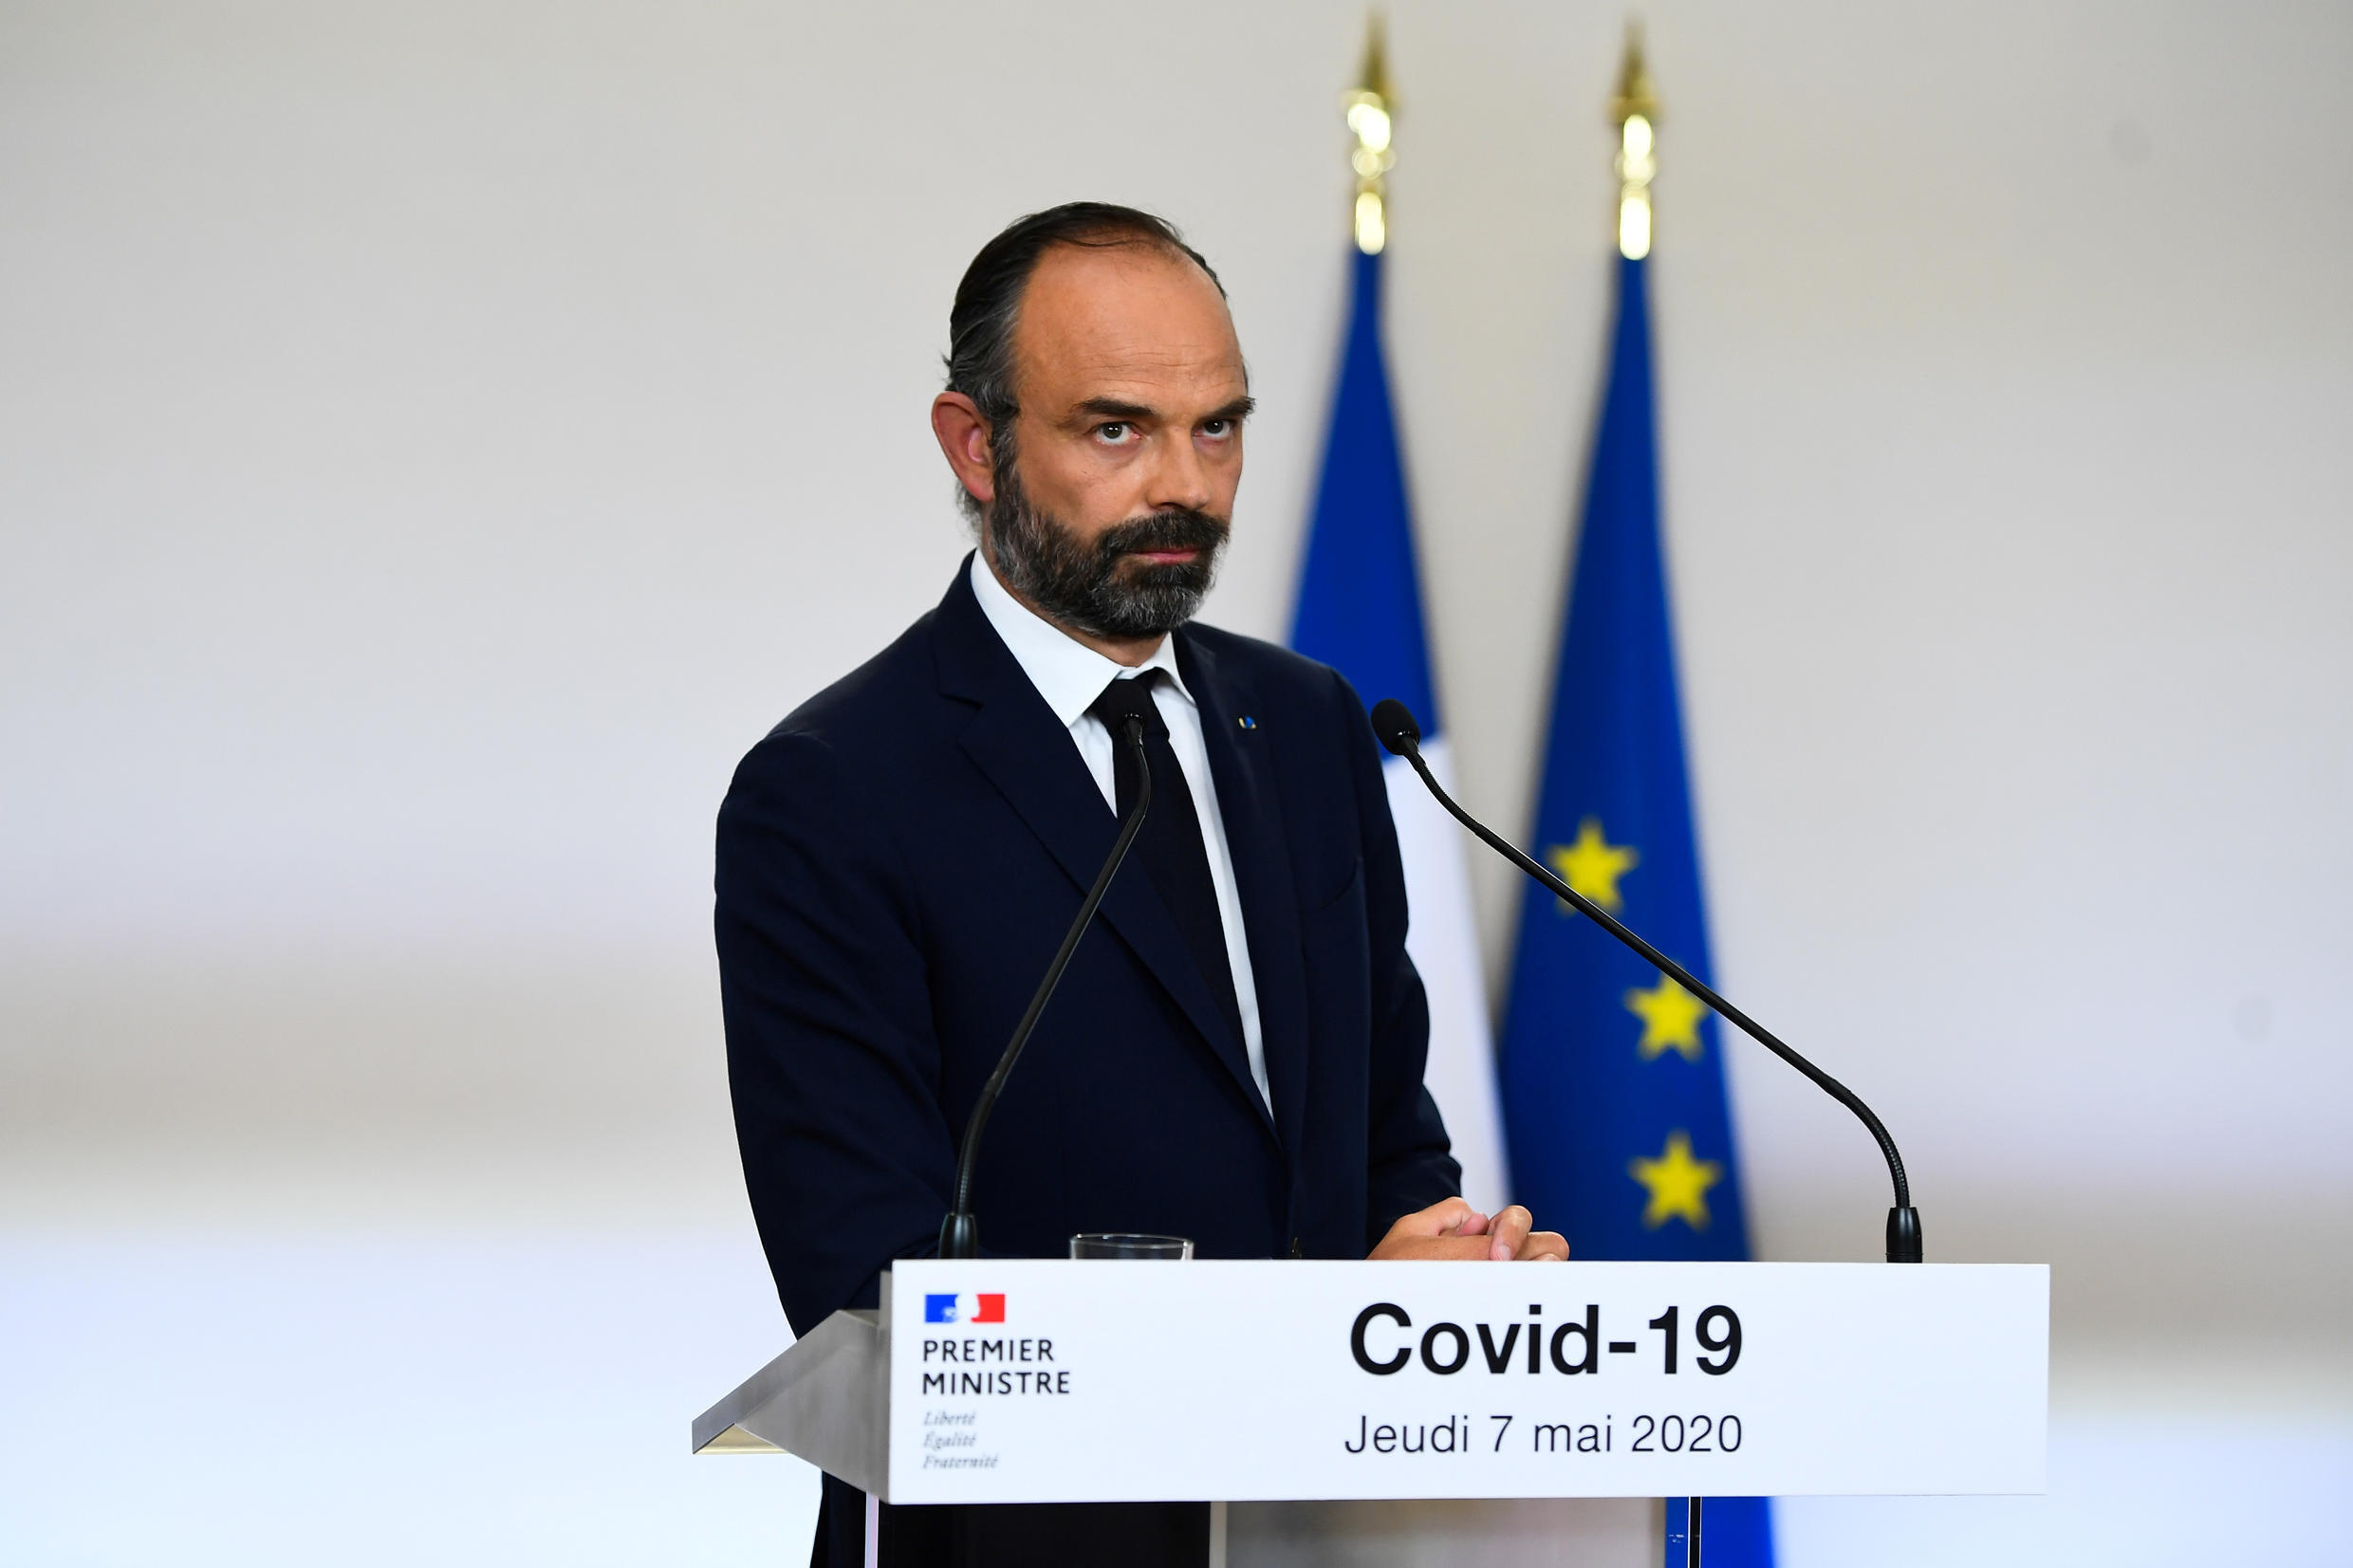 French Prime Minister Edouard Philippe looks on as he presents the details for the end of the country's lockdown imposed to curb the spread of the coronavirus disease (COVID-19), at the Hotel Matignon in Paris, France May 7, 2020.